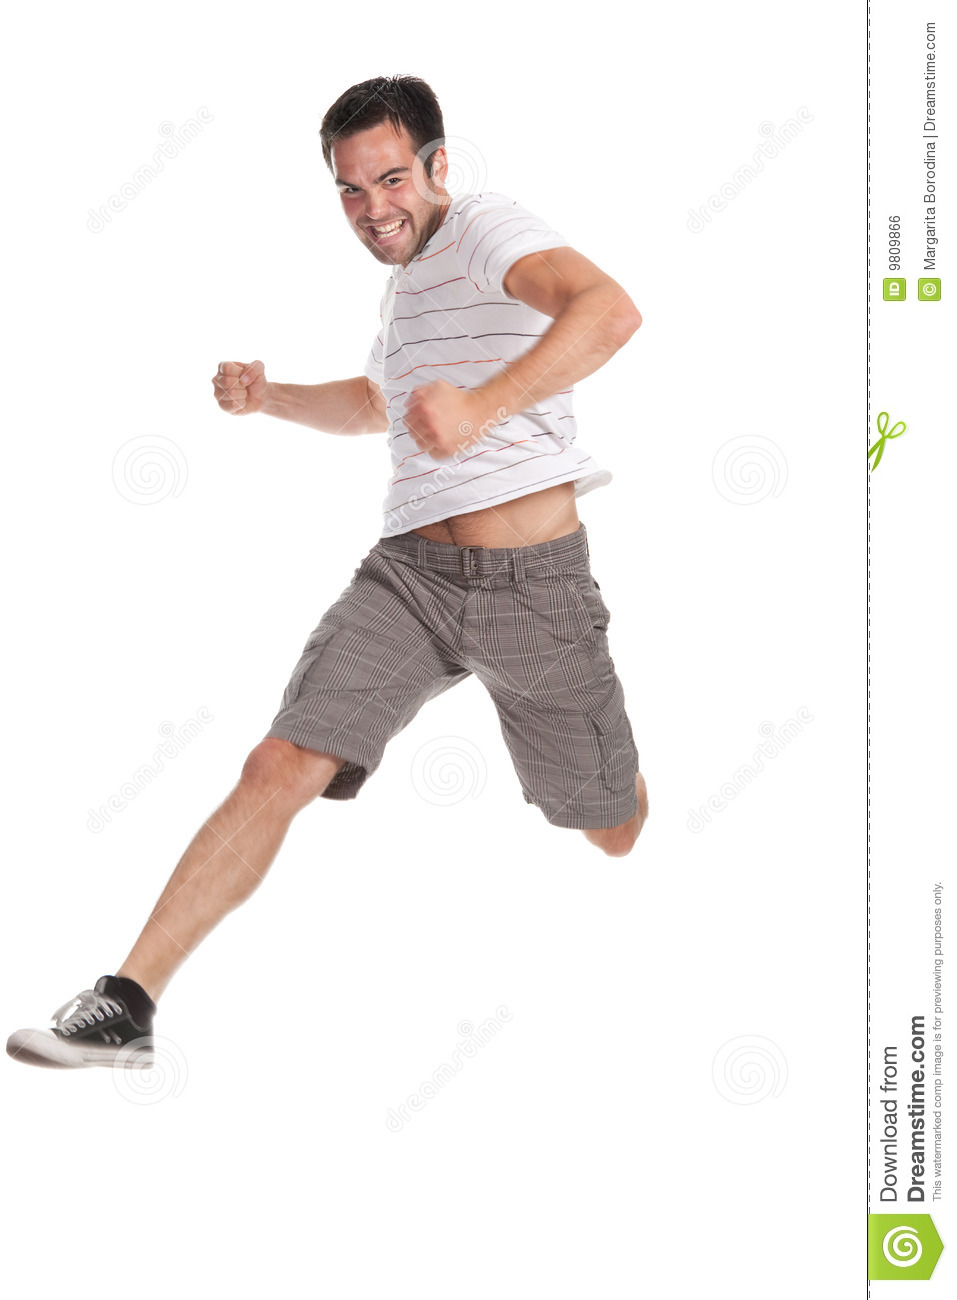 happy-man-jumping-white-background-98098